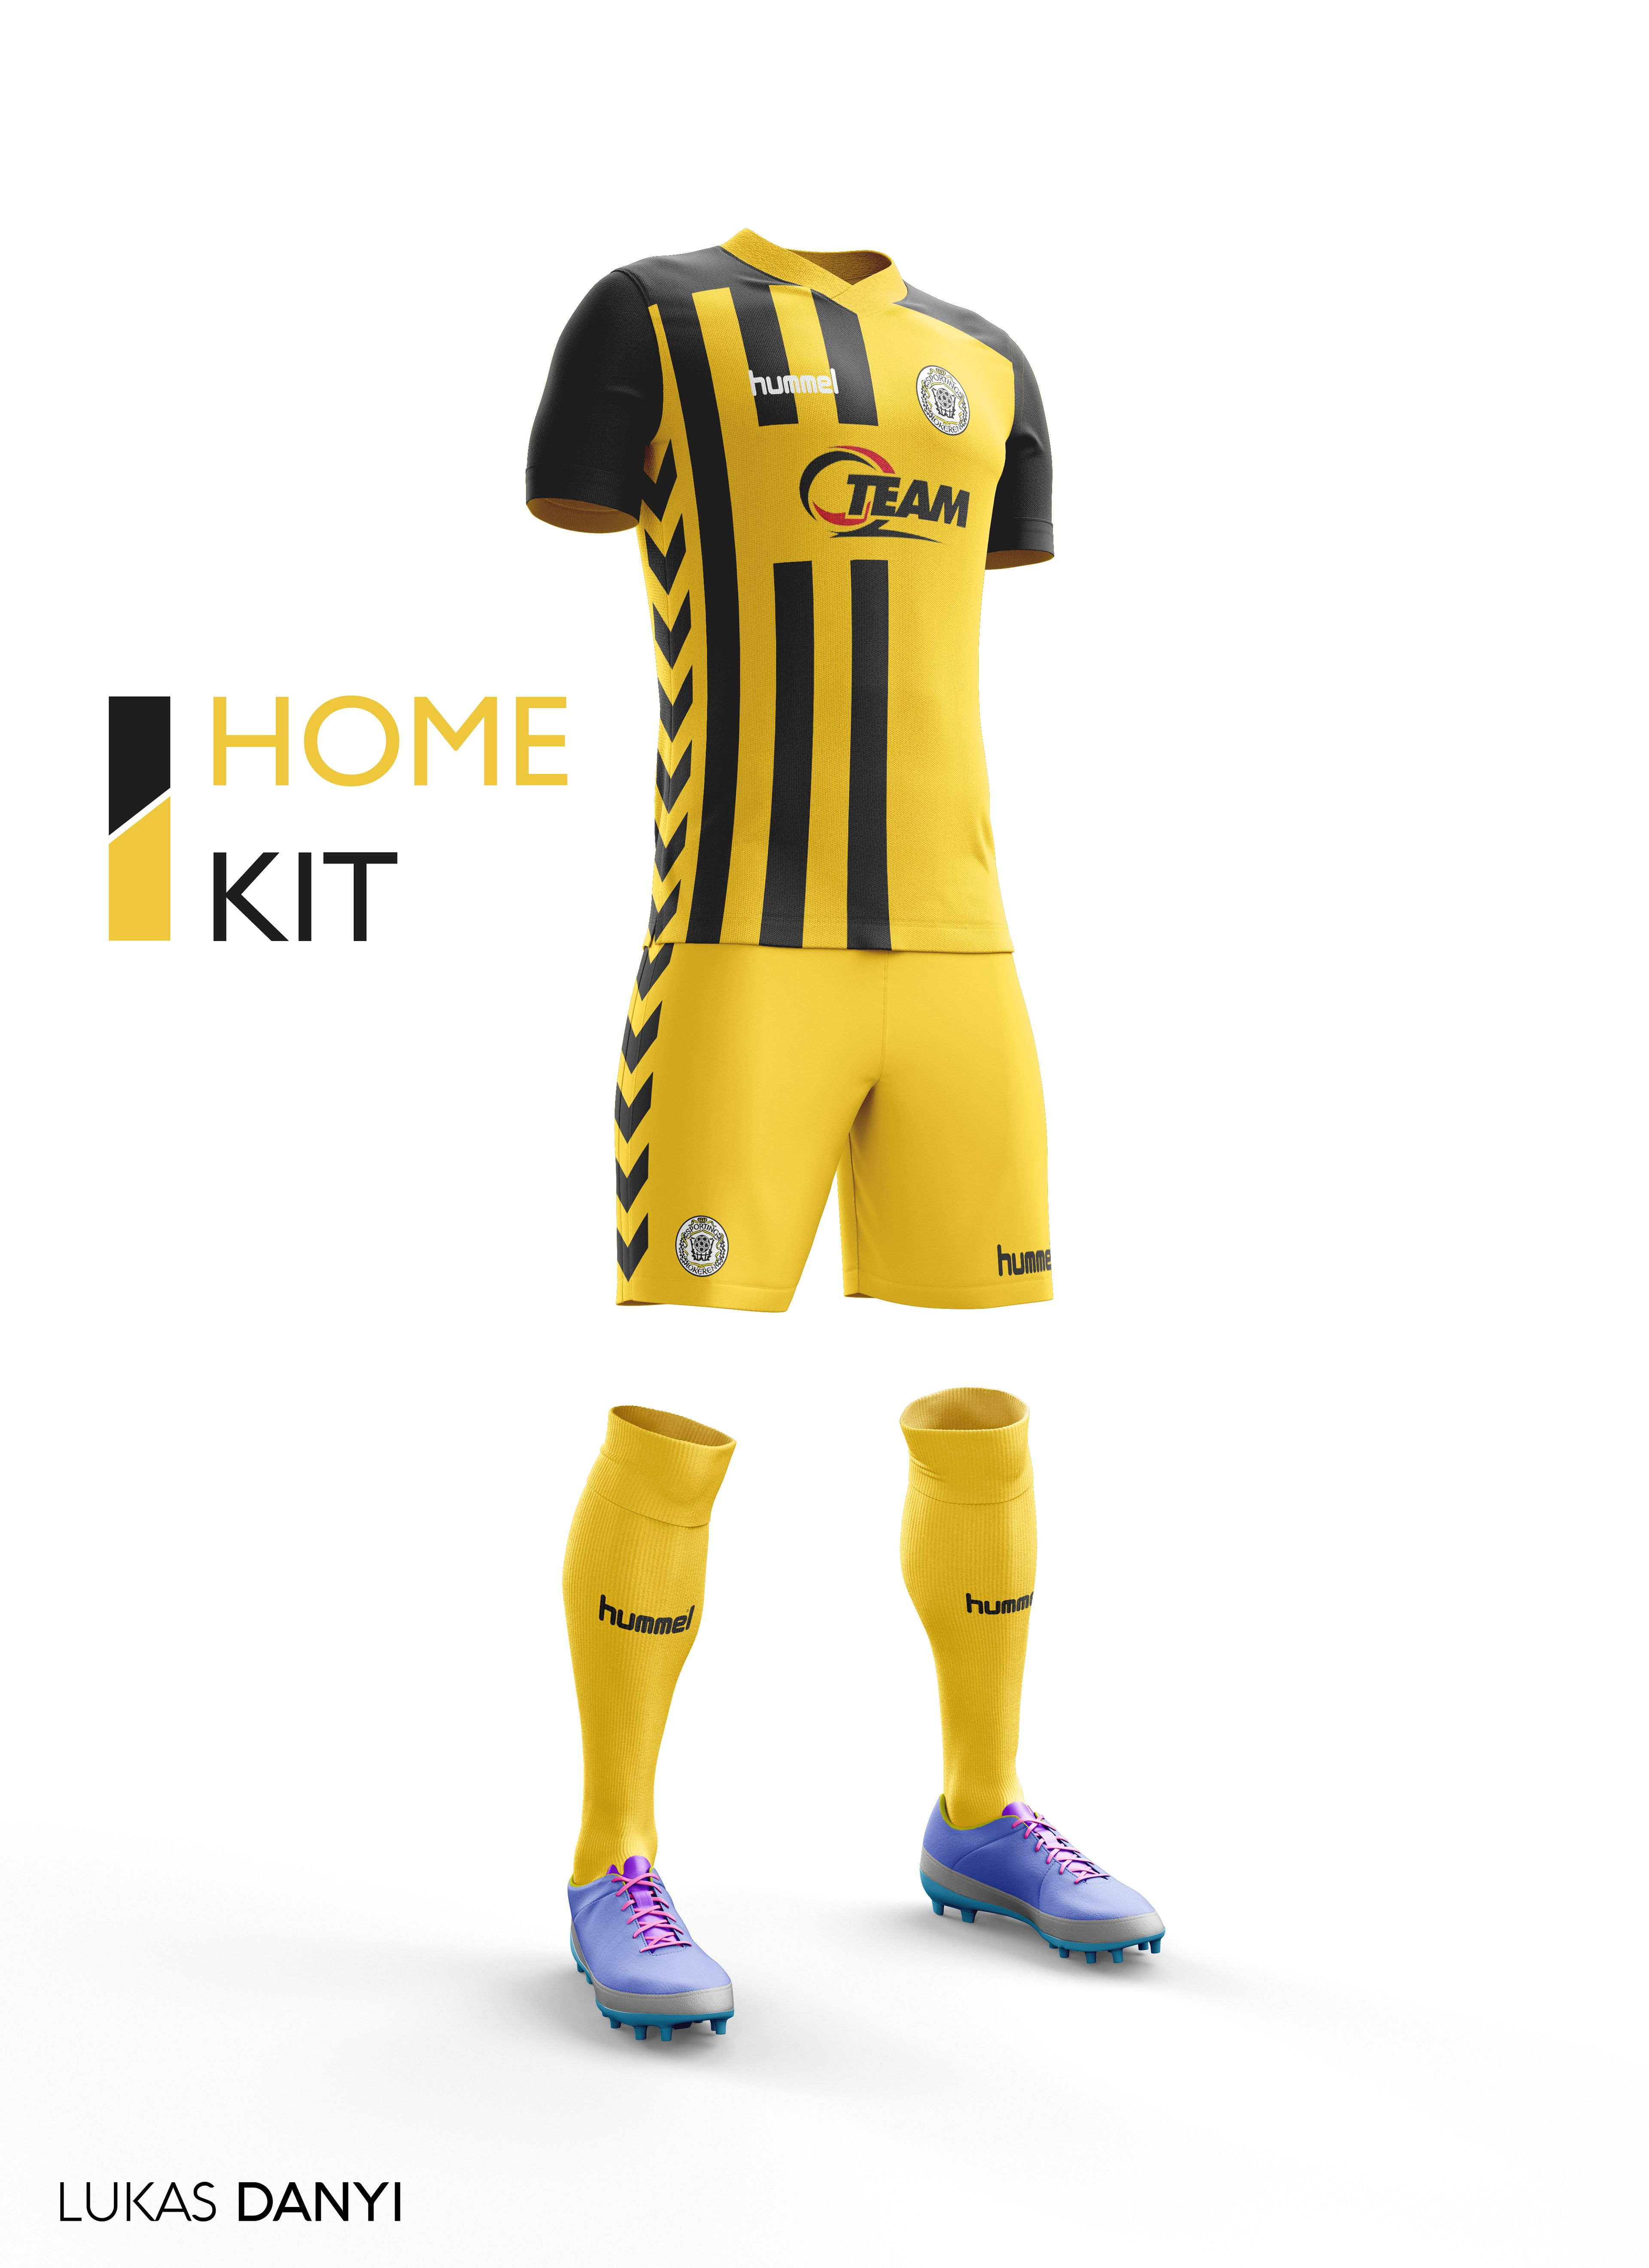 1d490826caa I decided to design all pro league teams their football kits but all in the  brand Hummel I hope you like it.